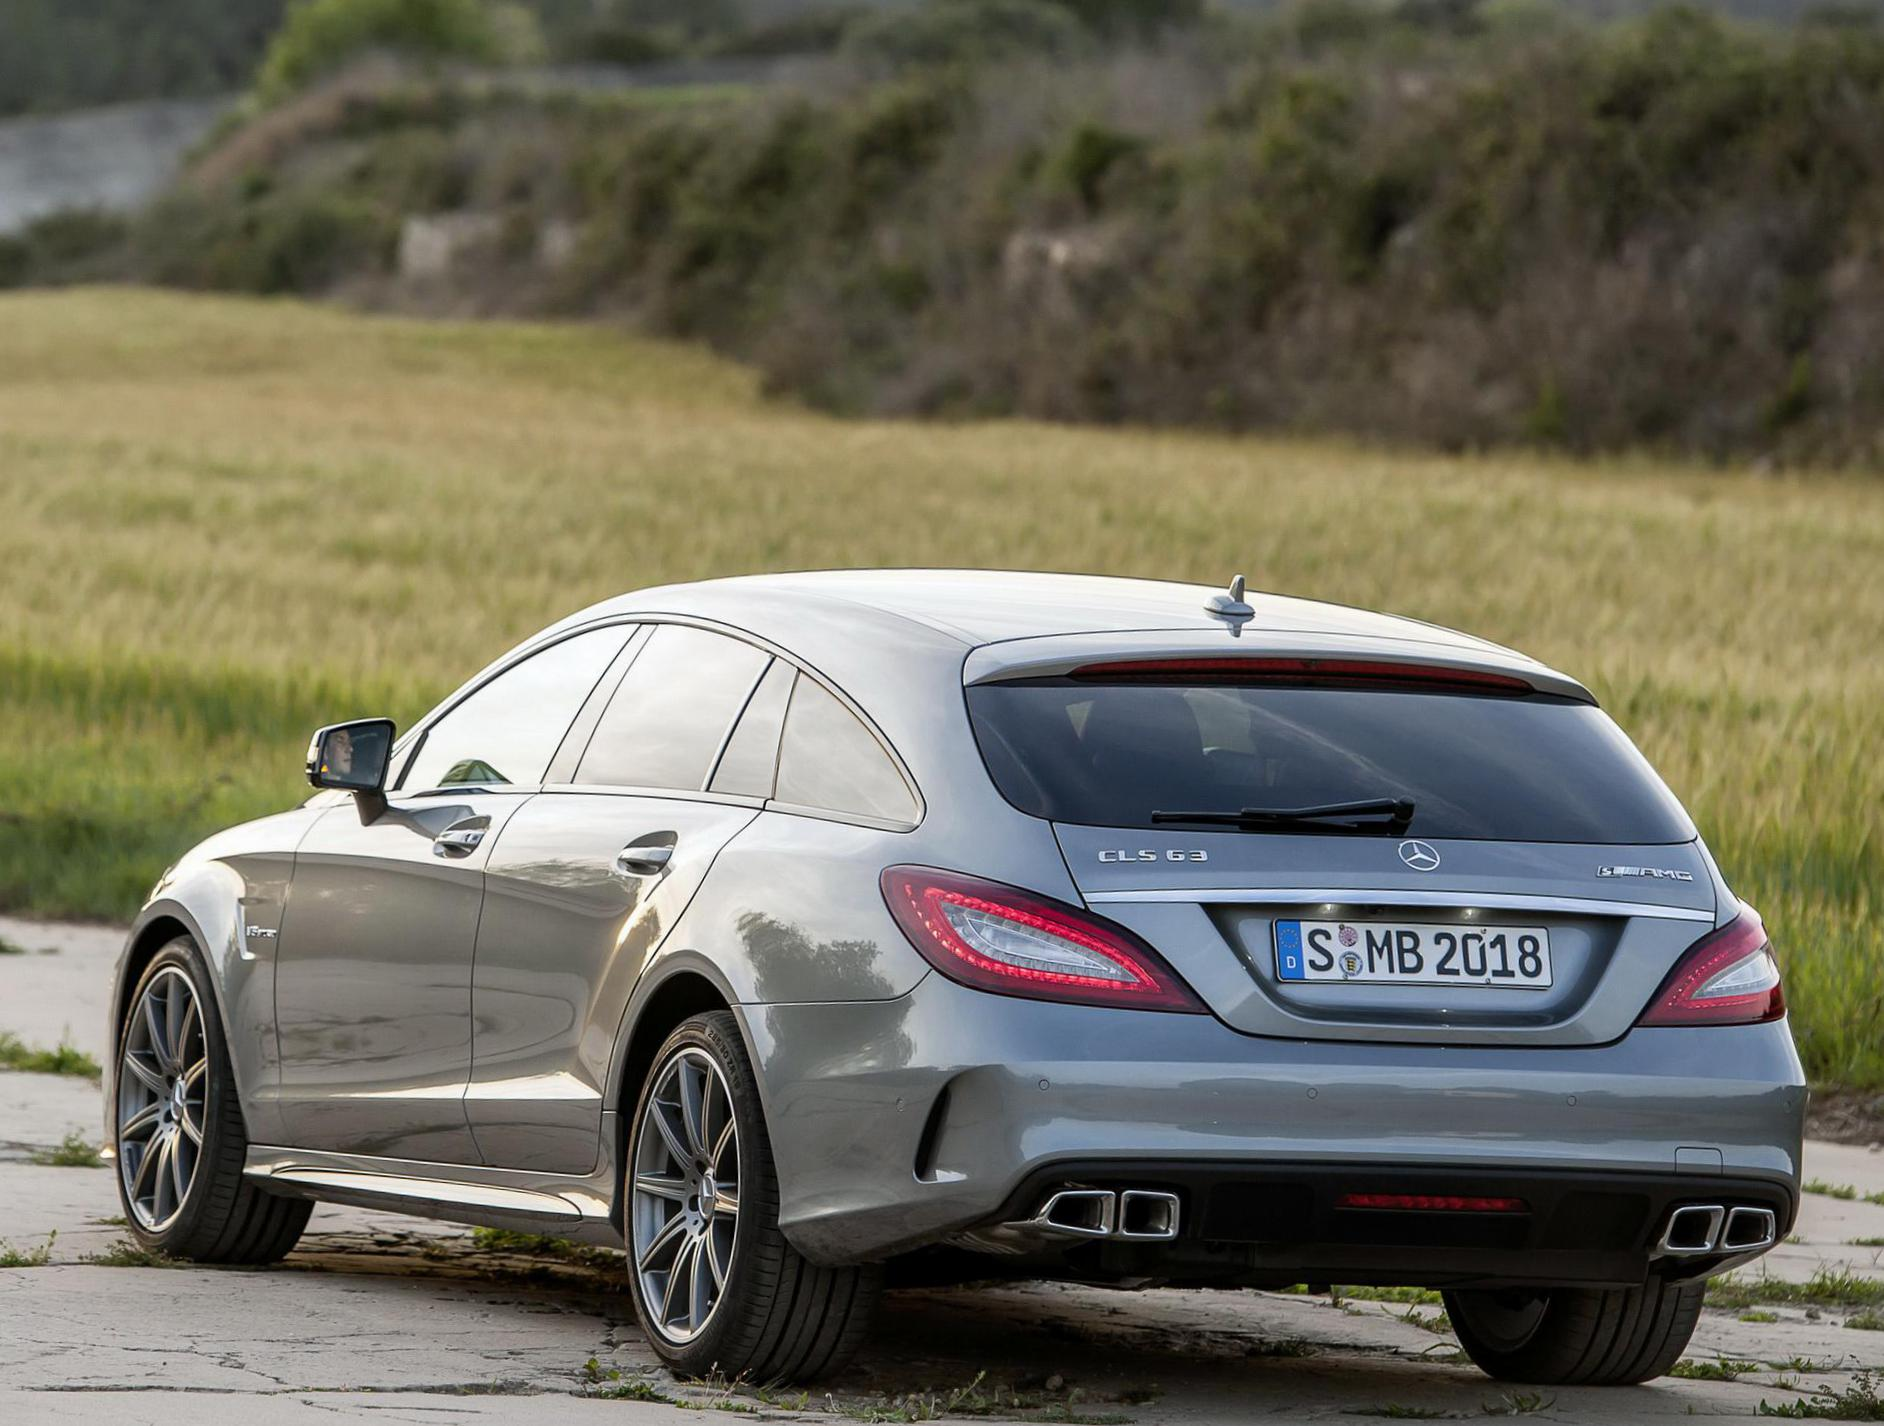 Mercedes CLS Shooting Brake (X218) model suv